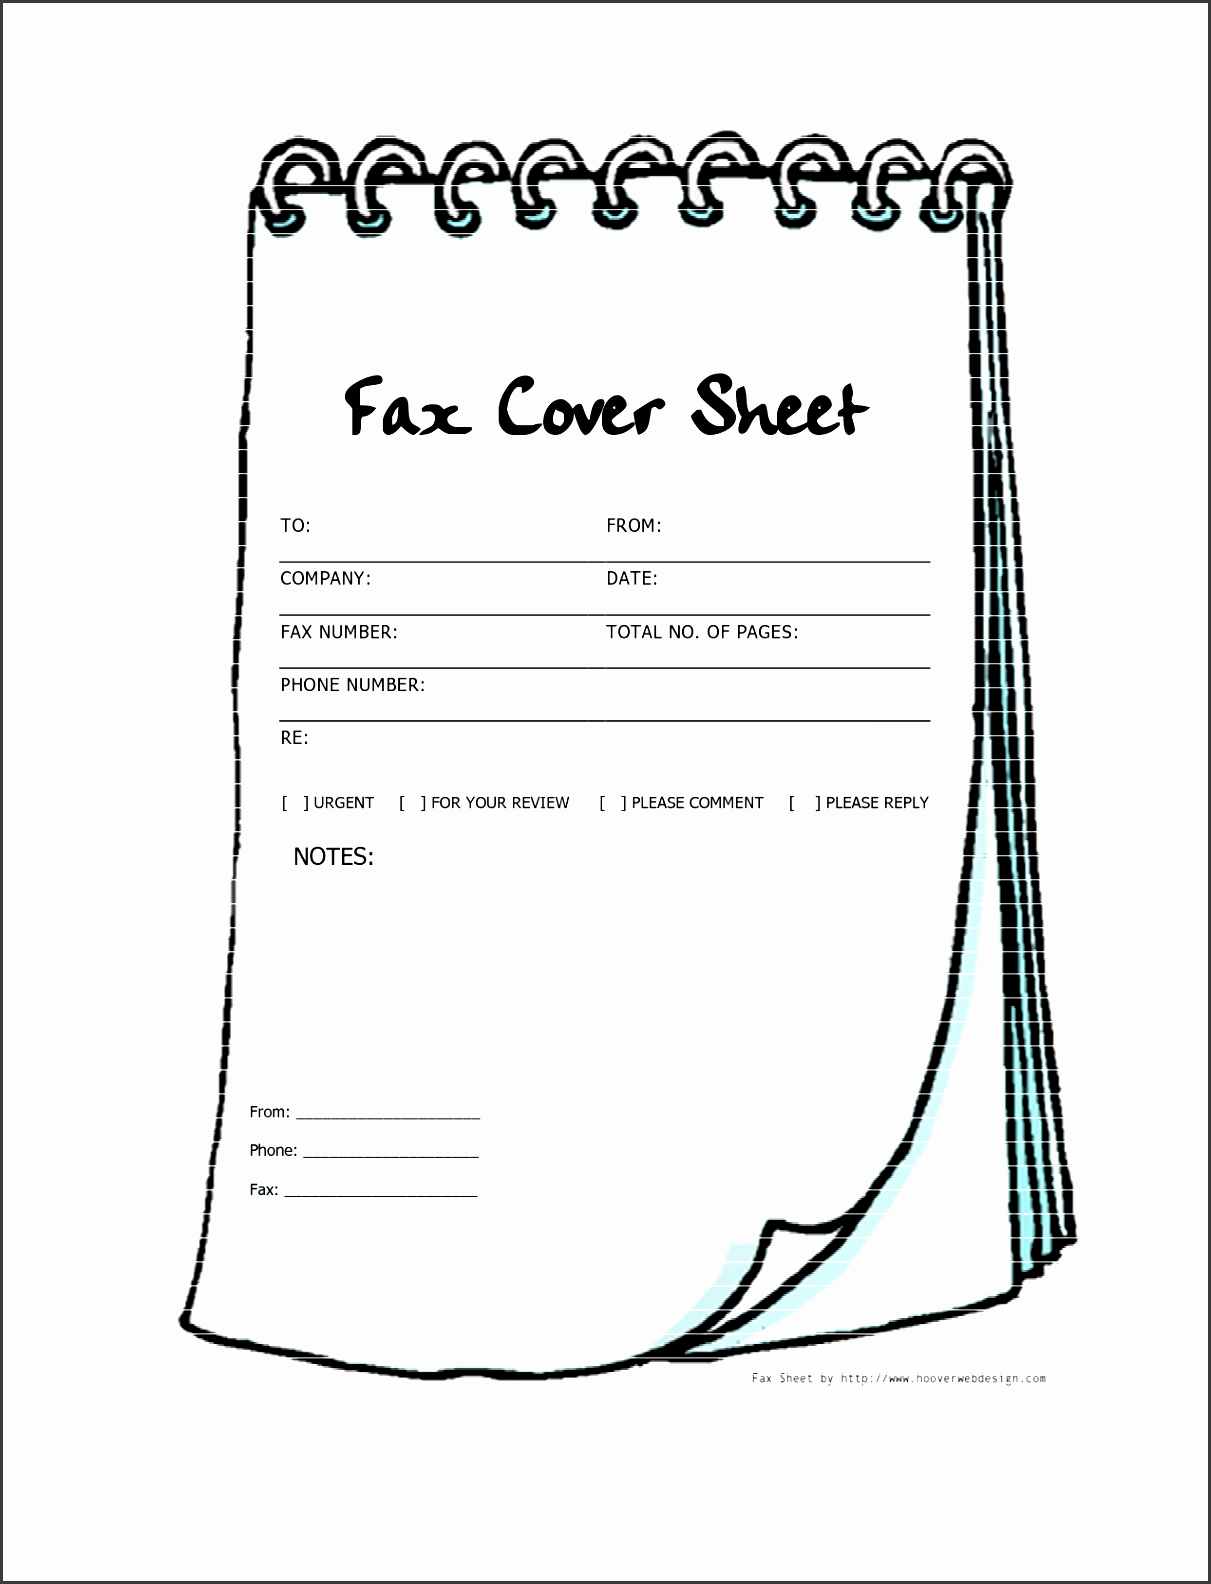 free printable fax cover sheets free printable fax cover sheet template notebook pdf